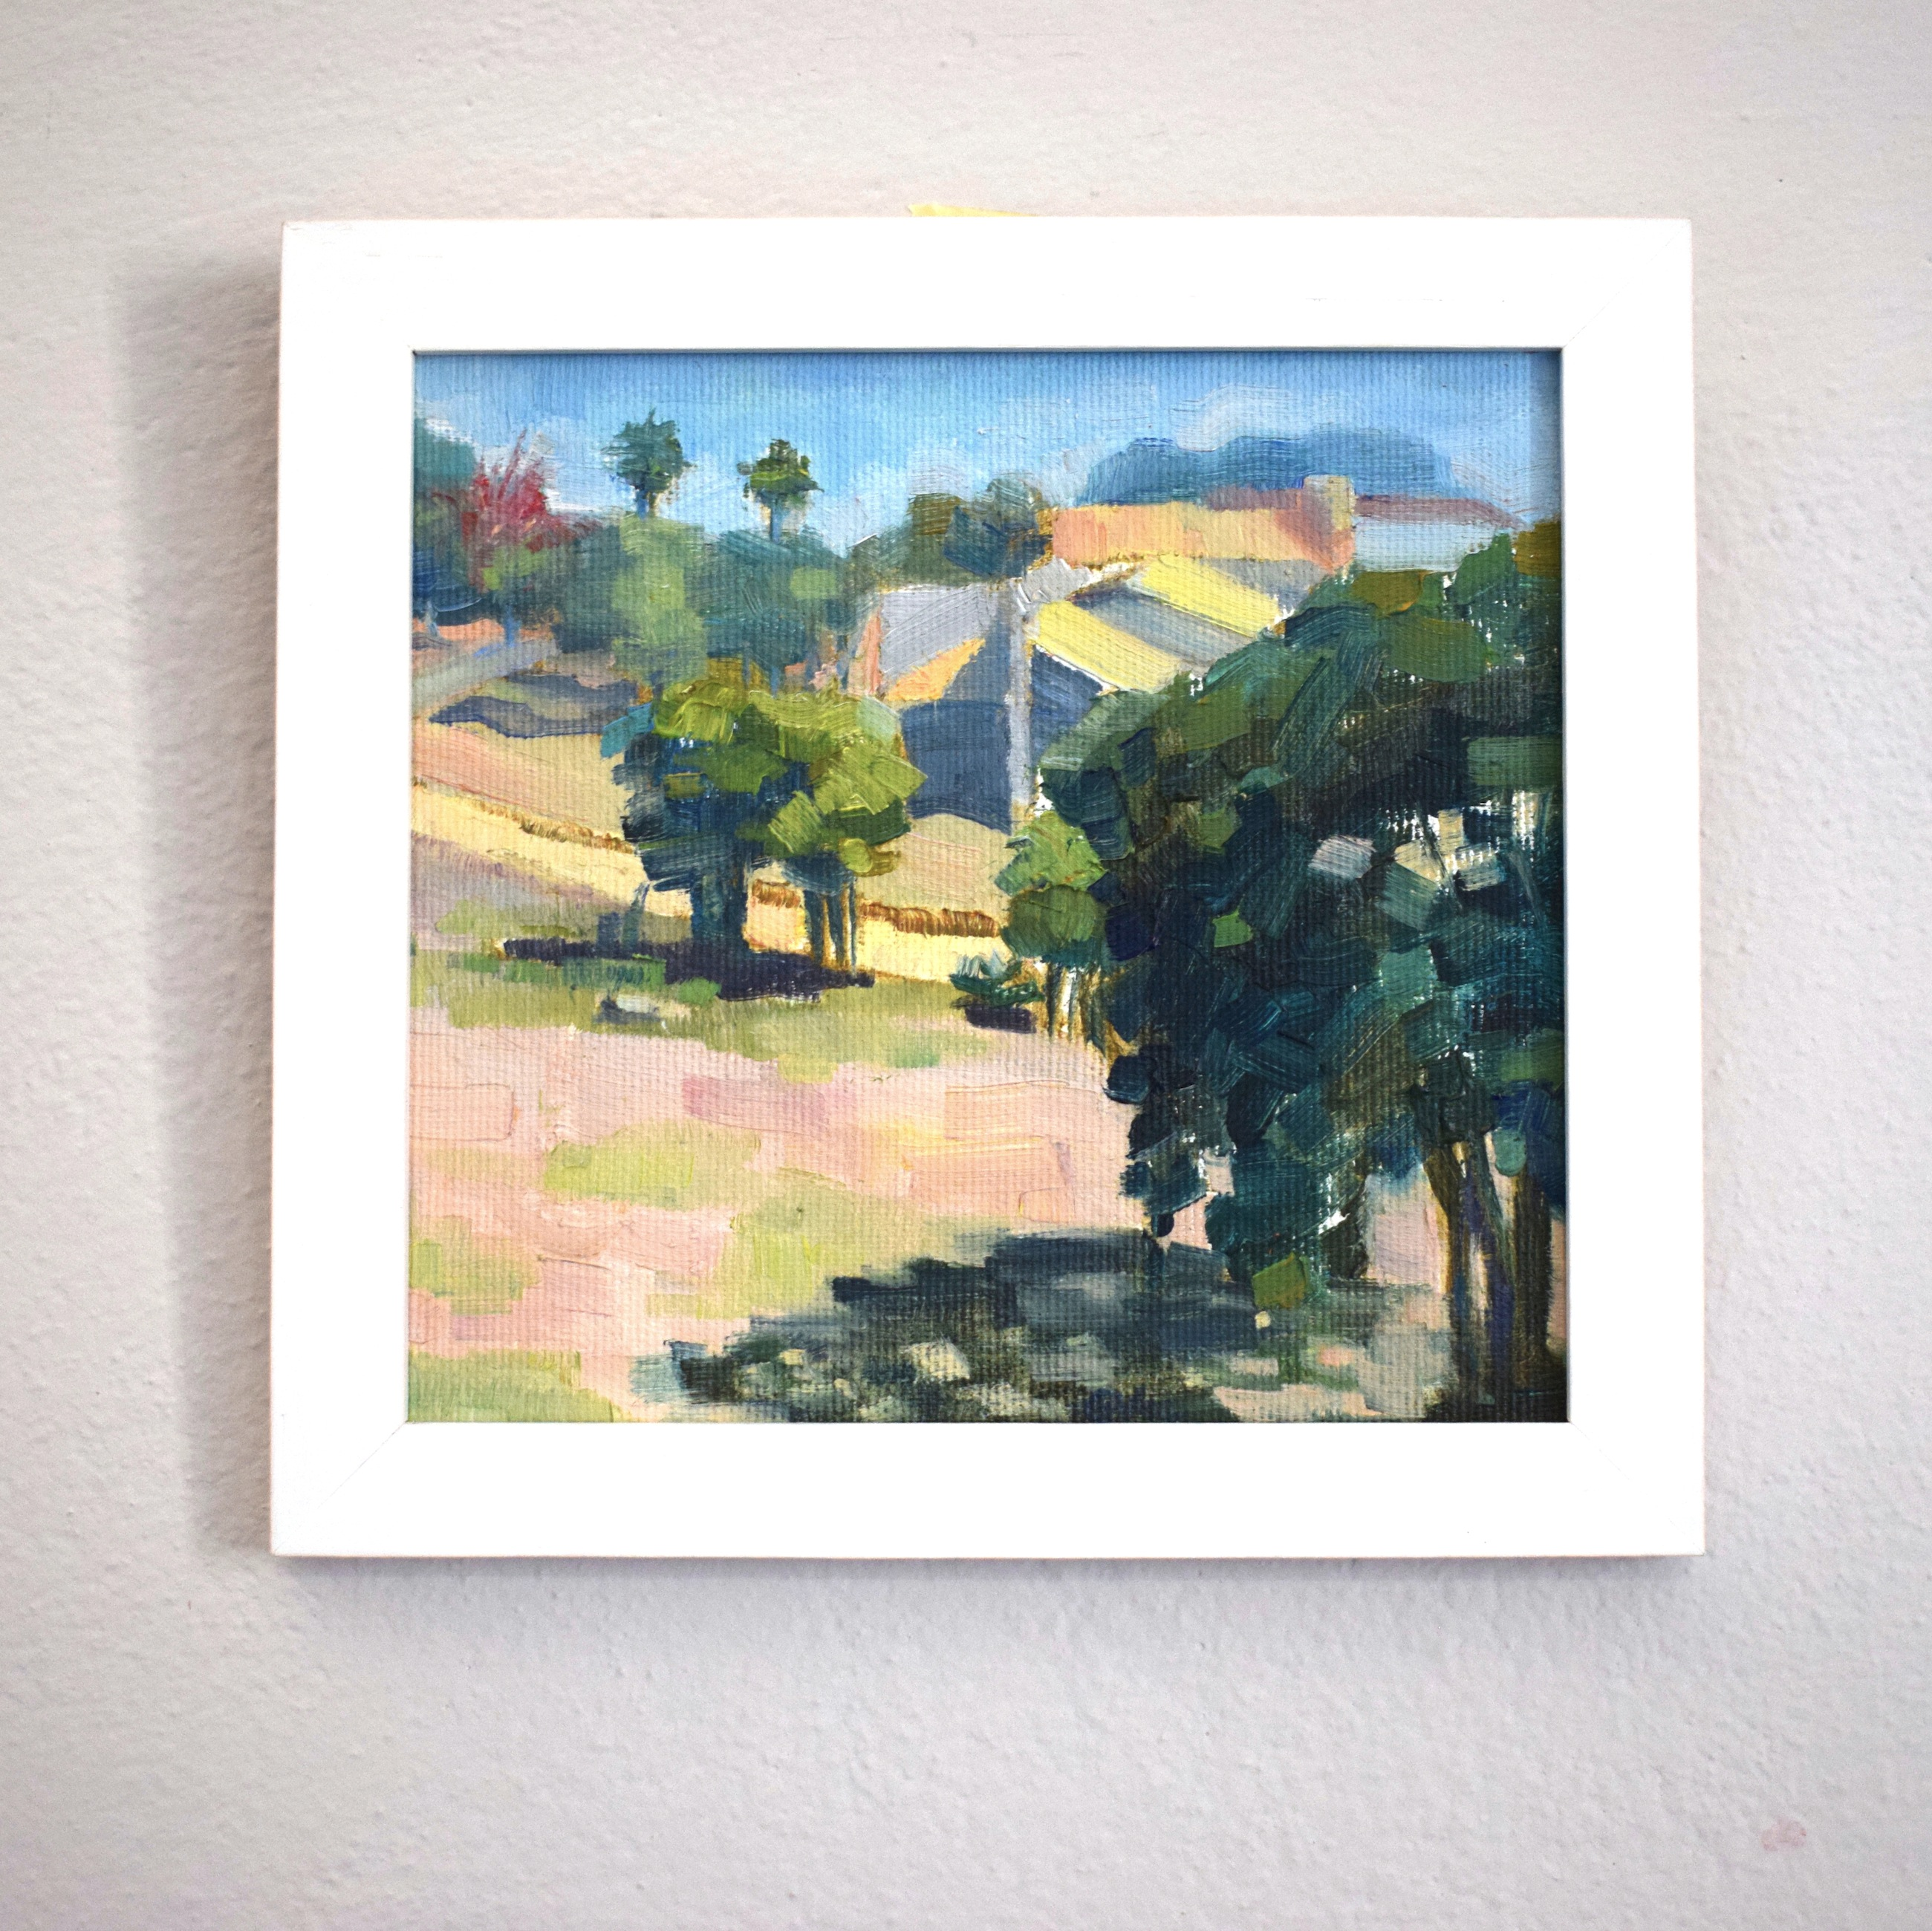 Original plein air paintings from Brazil